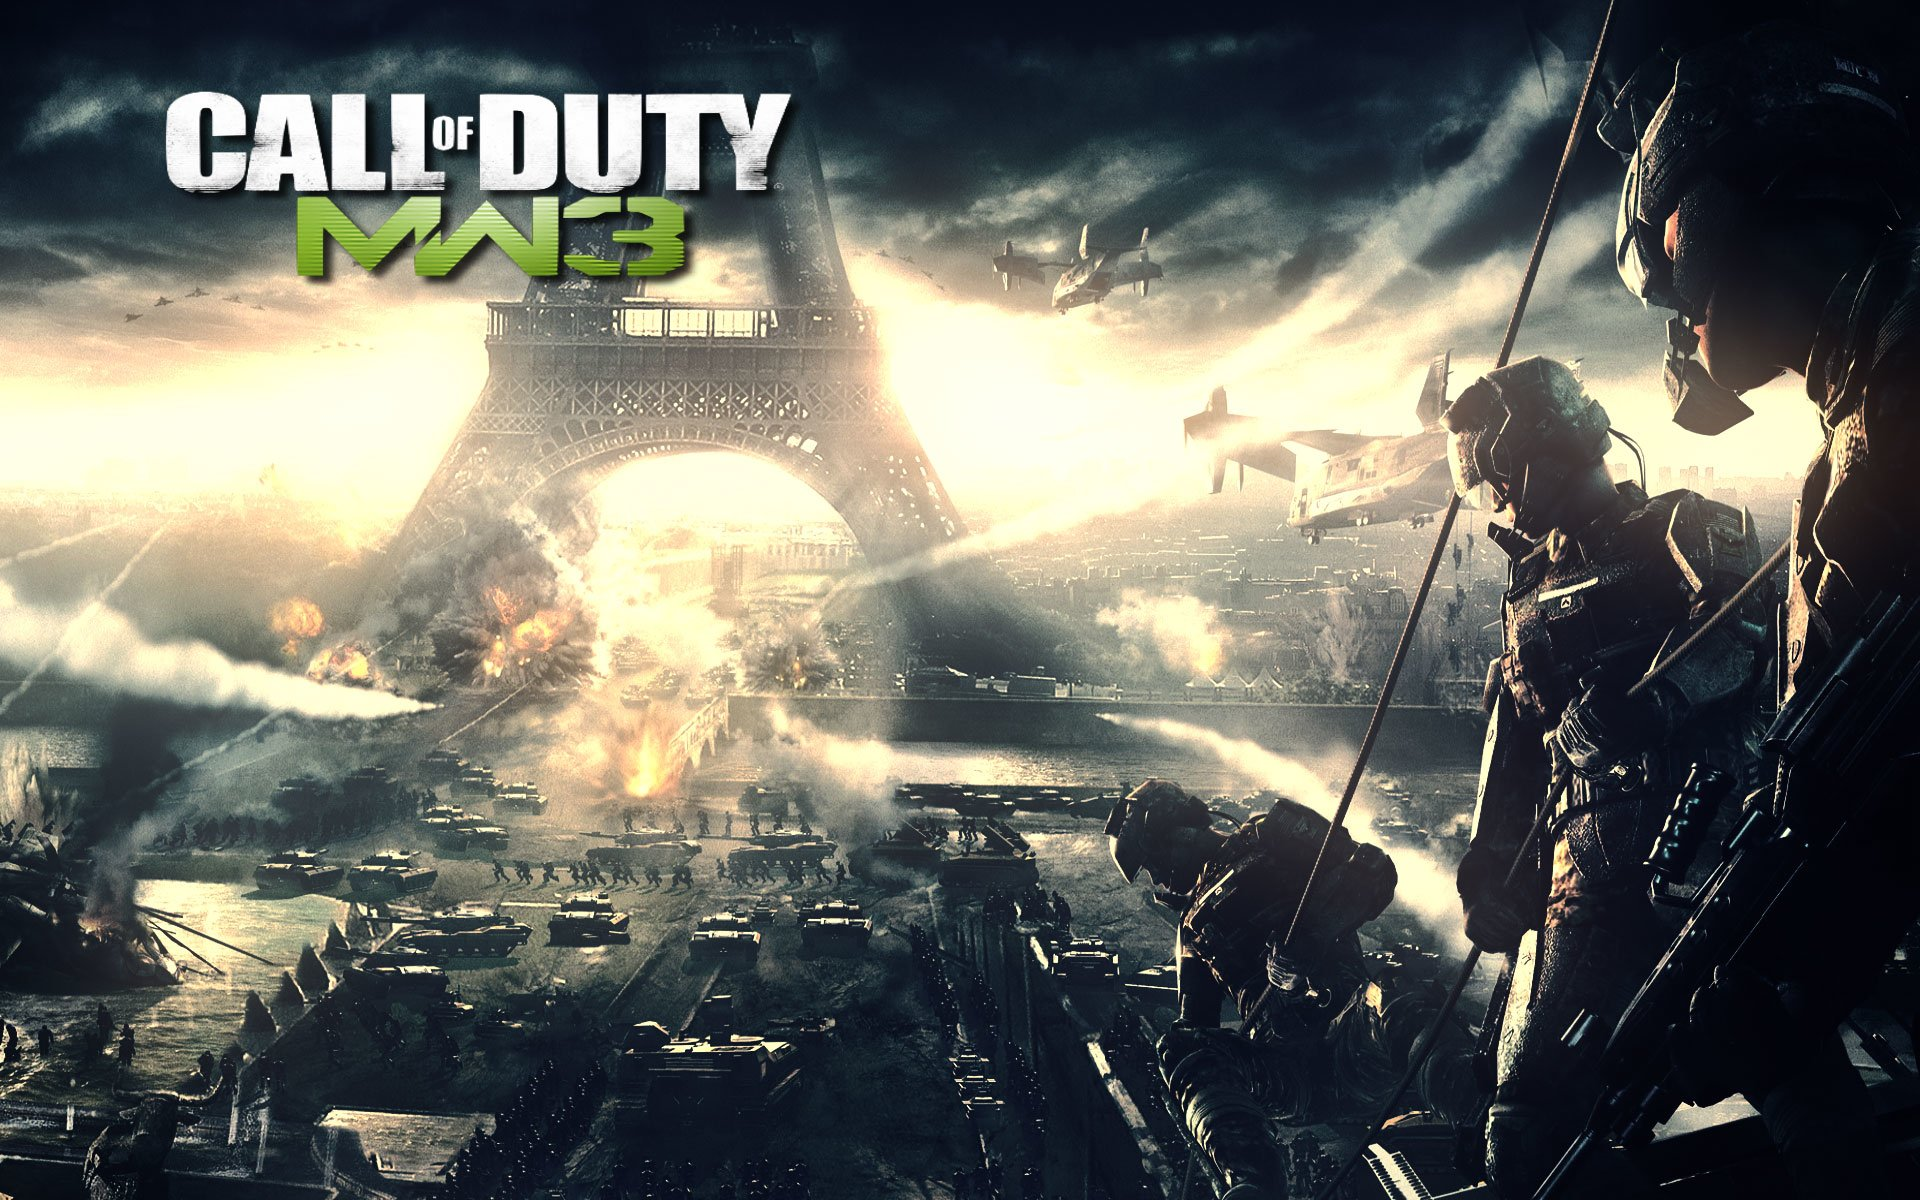 20 Call of Duty Modern Warfare 3 HD Wallpapers Background Images 1920x1200